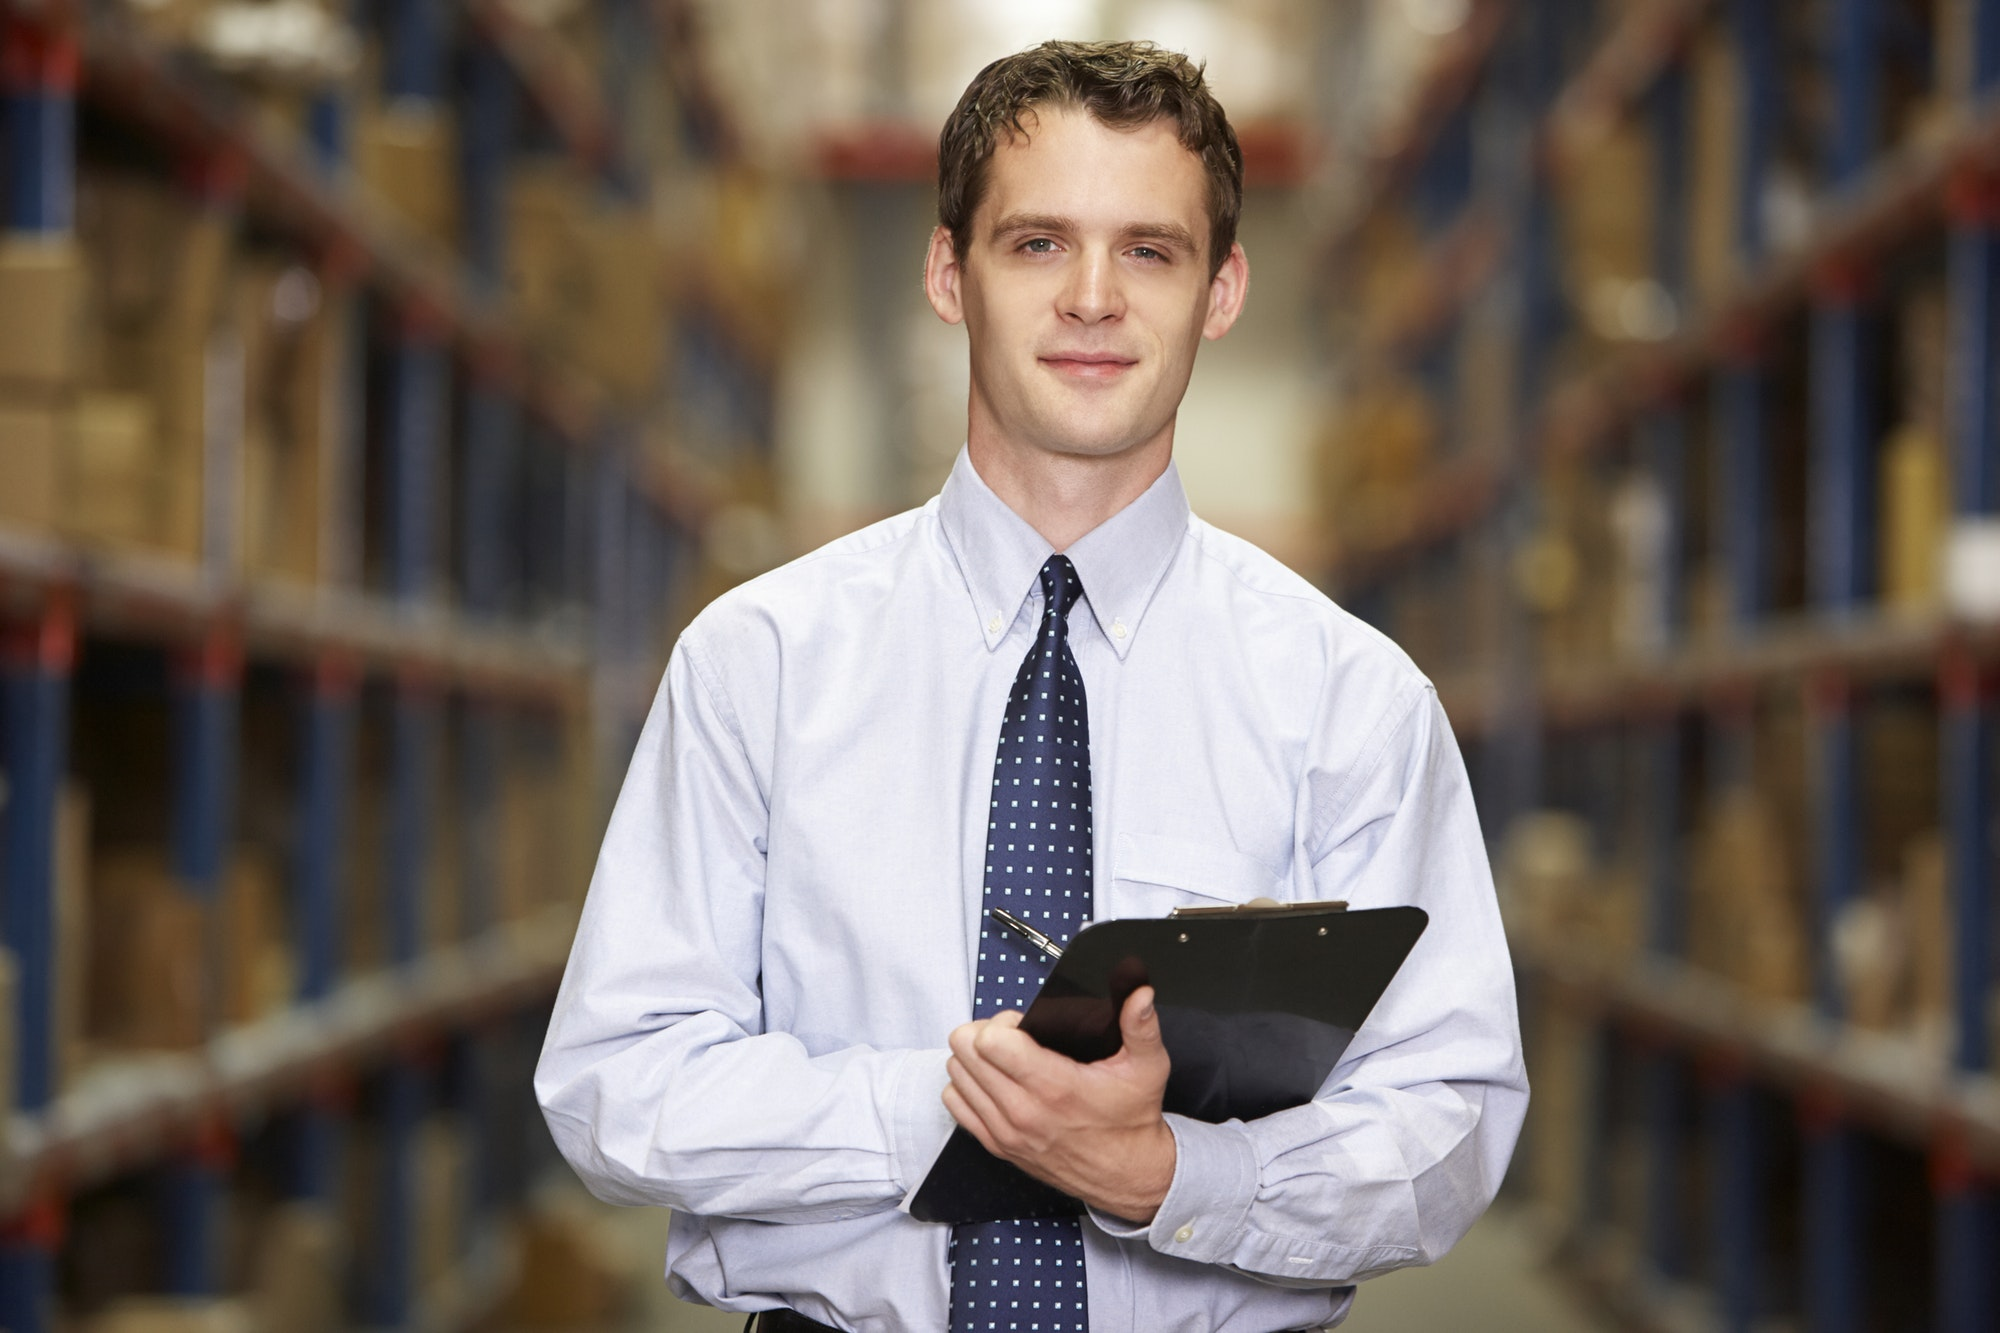 Portrait Of Manager In Warehouse With Clipboard